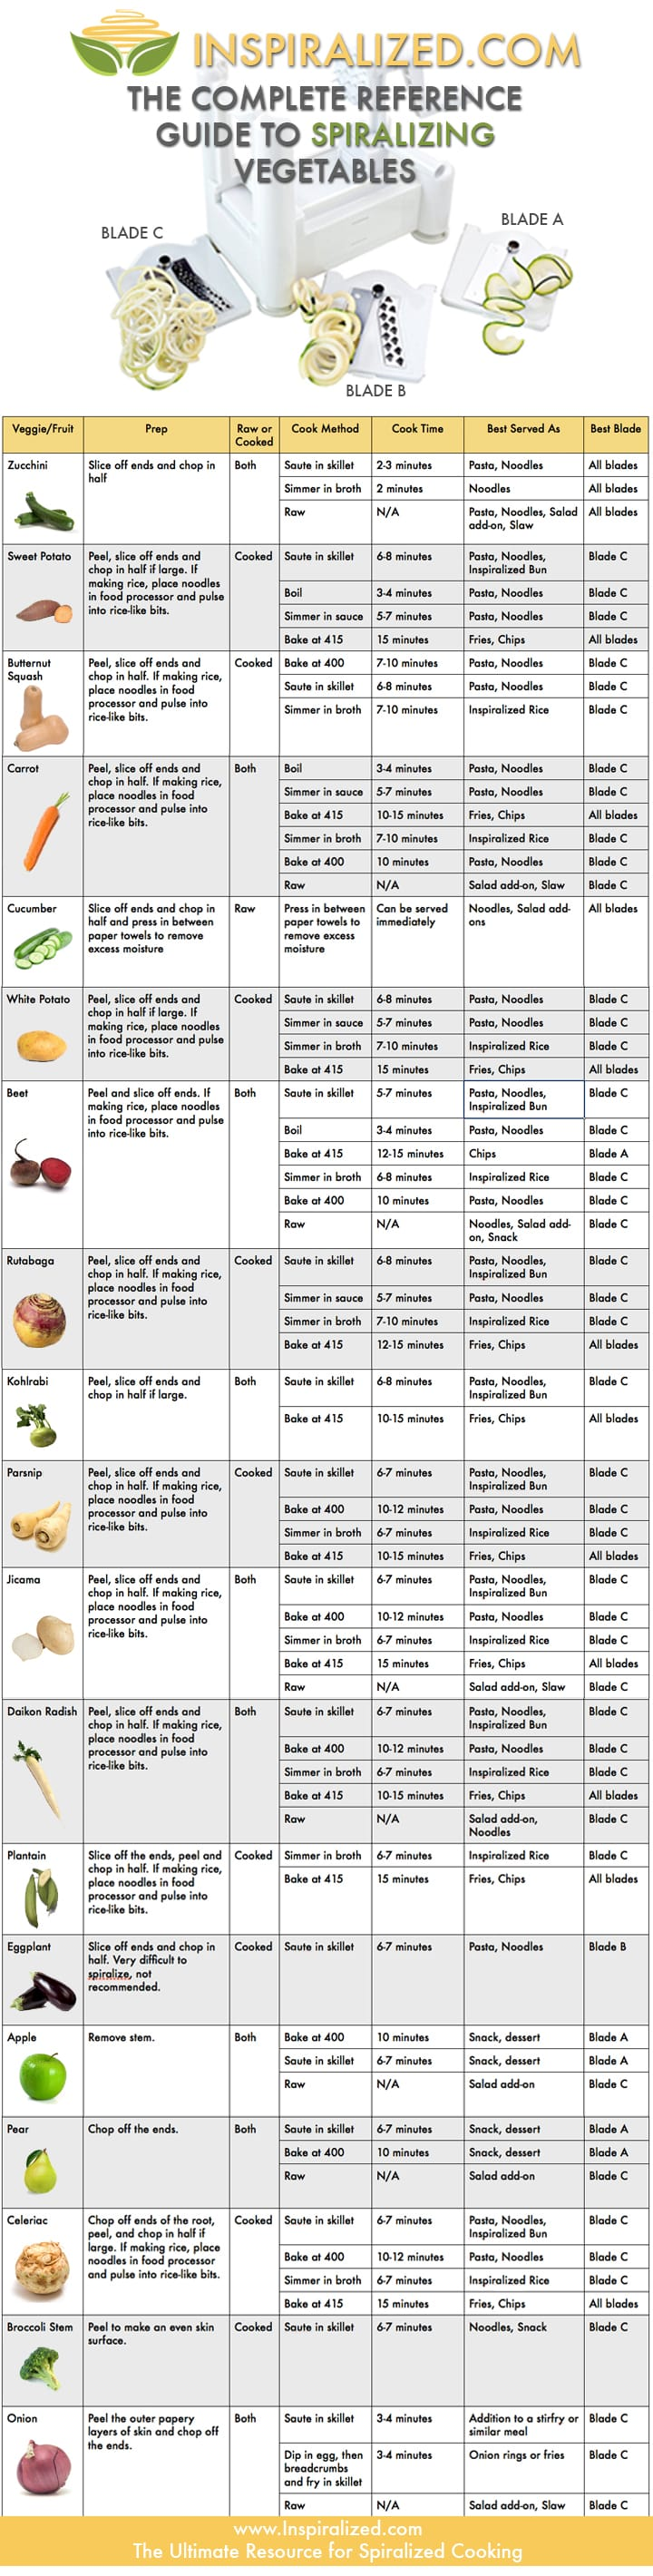 Complete Reference Guide to Spiralizing Vegetables